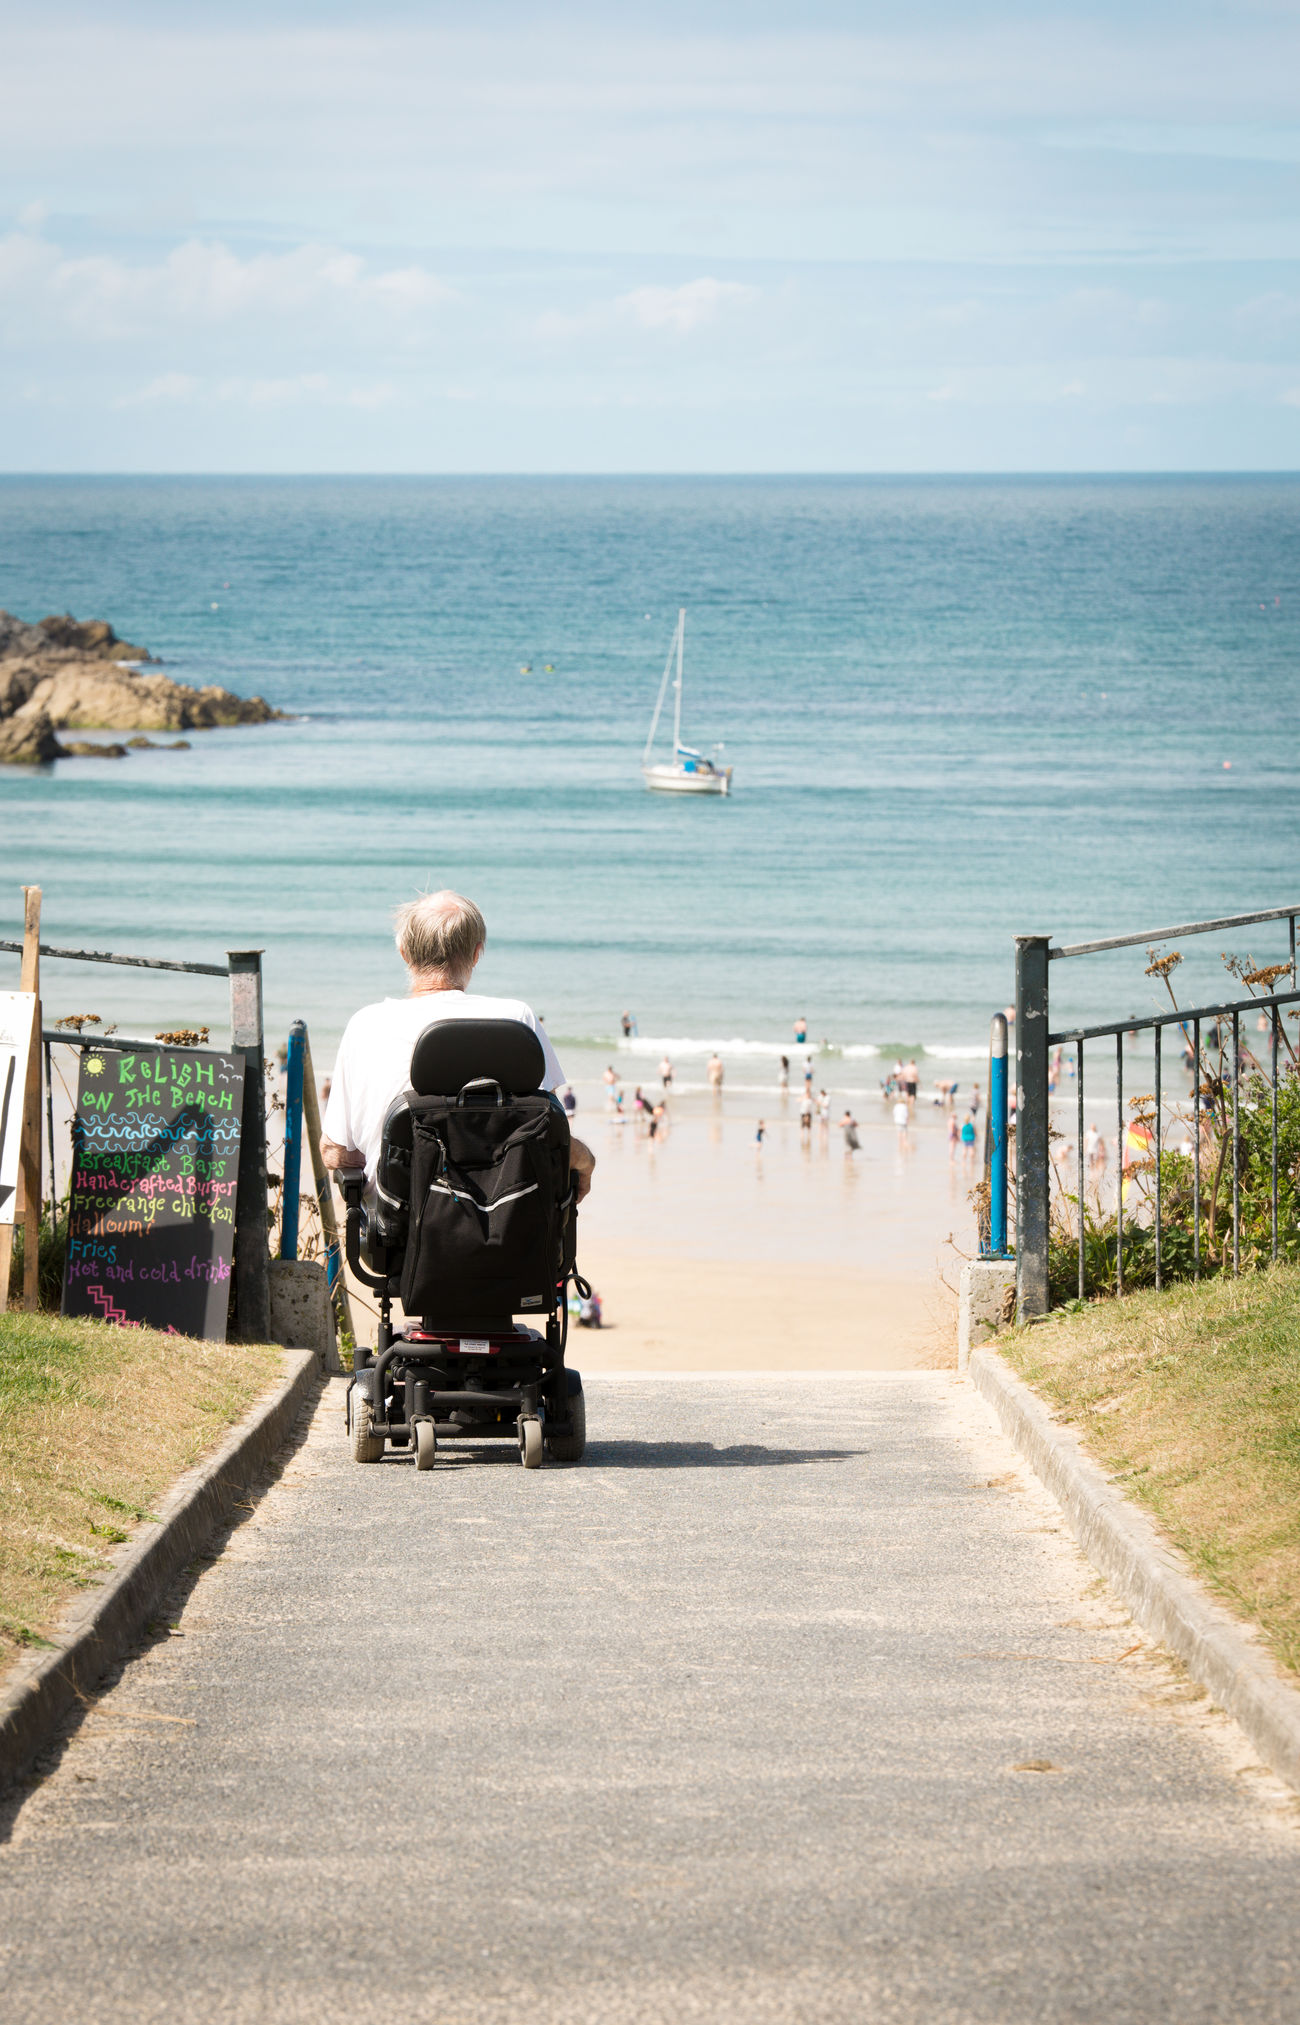 Wish he could.... Adult Adults Only Day Differing Abilities Full Length Horizon Over Water Loneliness Old Age One Person Outdoors Paralysis People Physical Impairment Rear View Sadness Sea Sea View Sitting Sky Wheelchair Wheelchair Access Wish